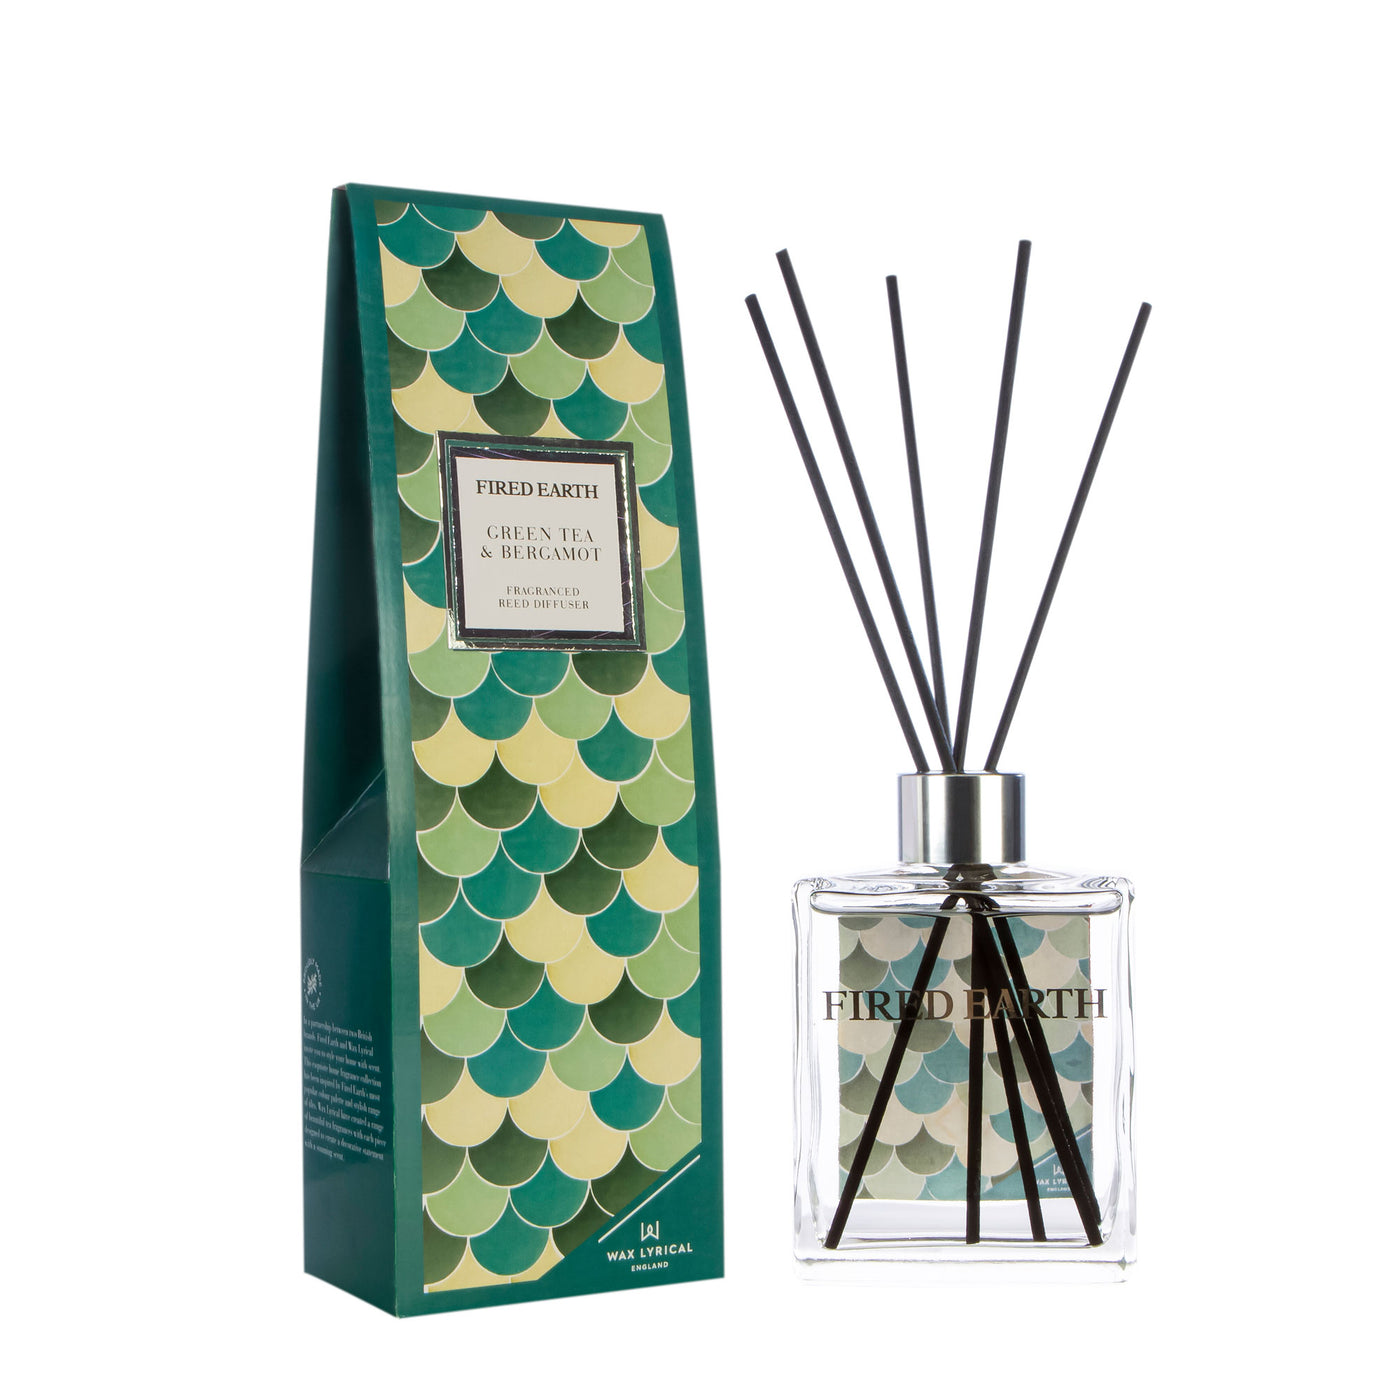 Fired Earth Room Diffuser 180mL, Green Tea & Bergamot